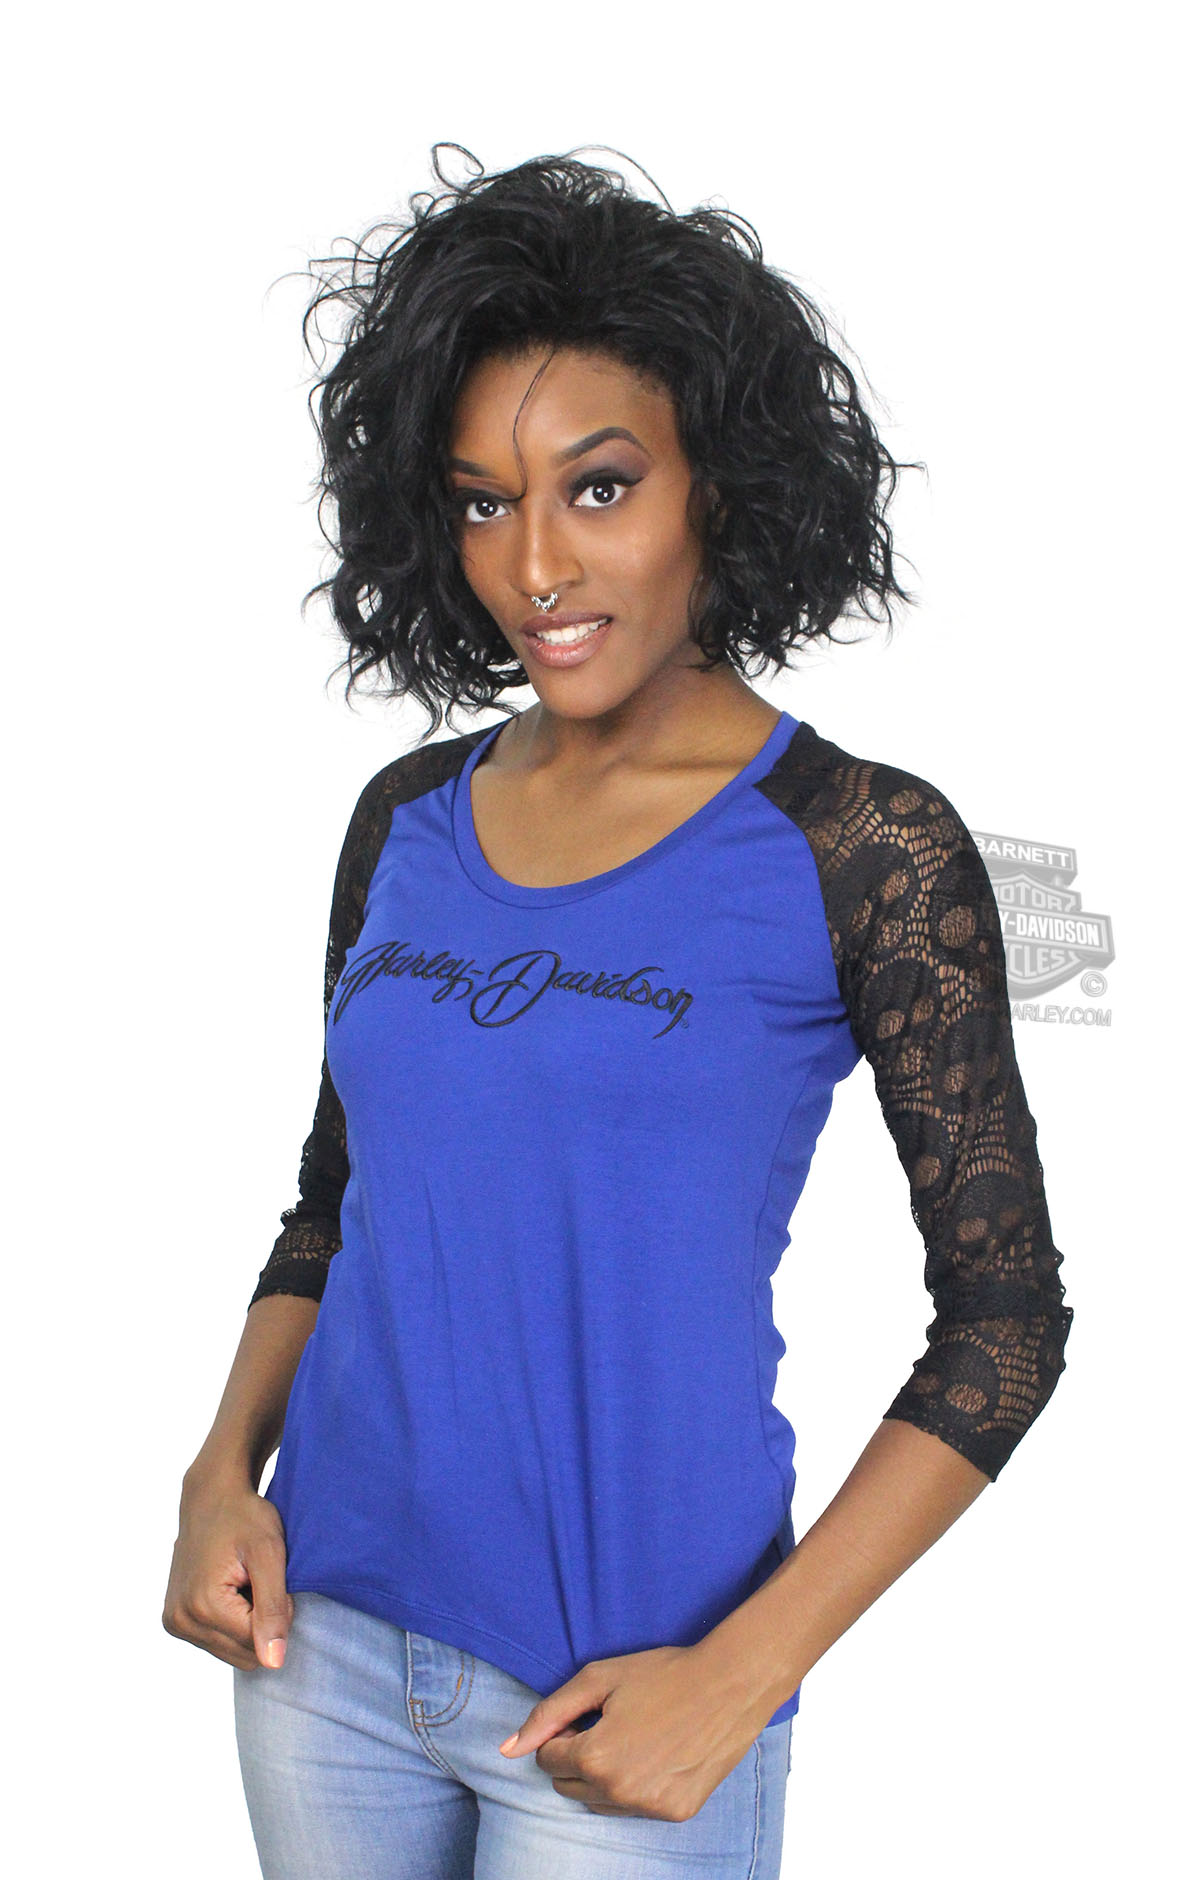 ** SIZE SMALL ONLY ** Harley-Davidson® Womens Old Flavor Skull Novelty Piecing Blue 3/4 Sleeve T-Shirt